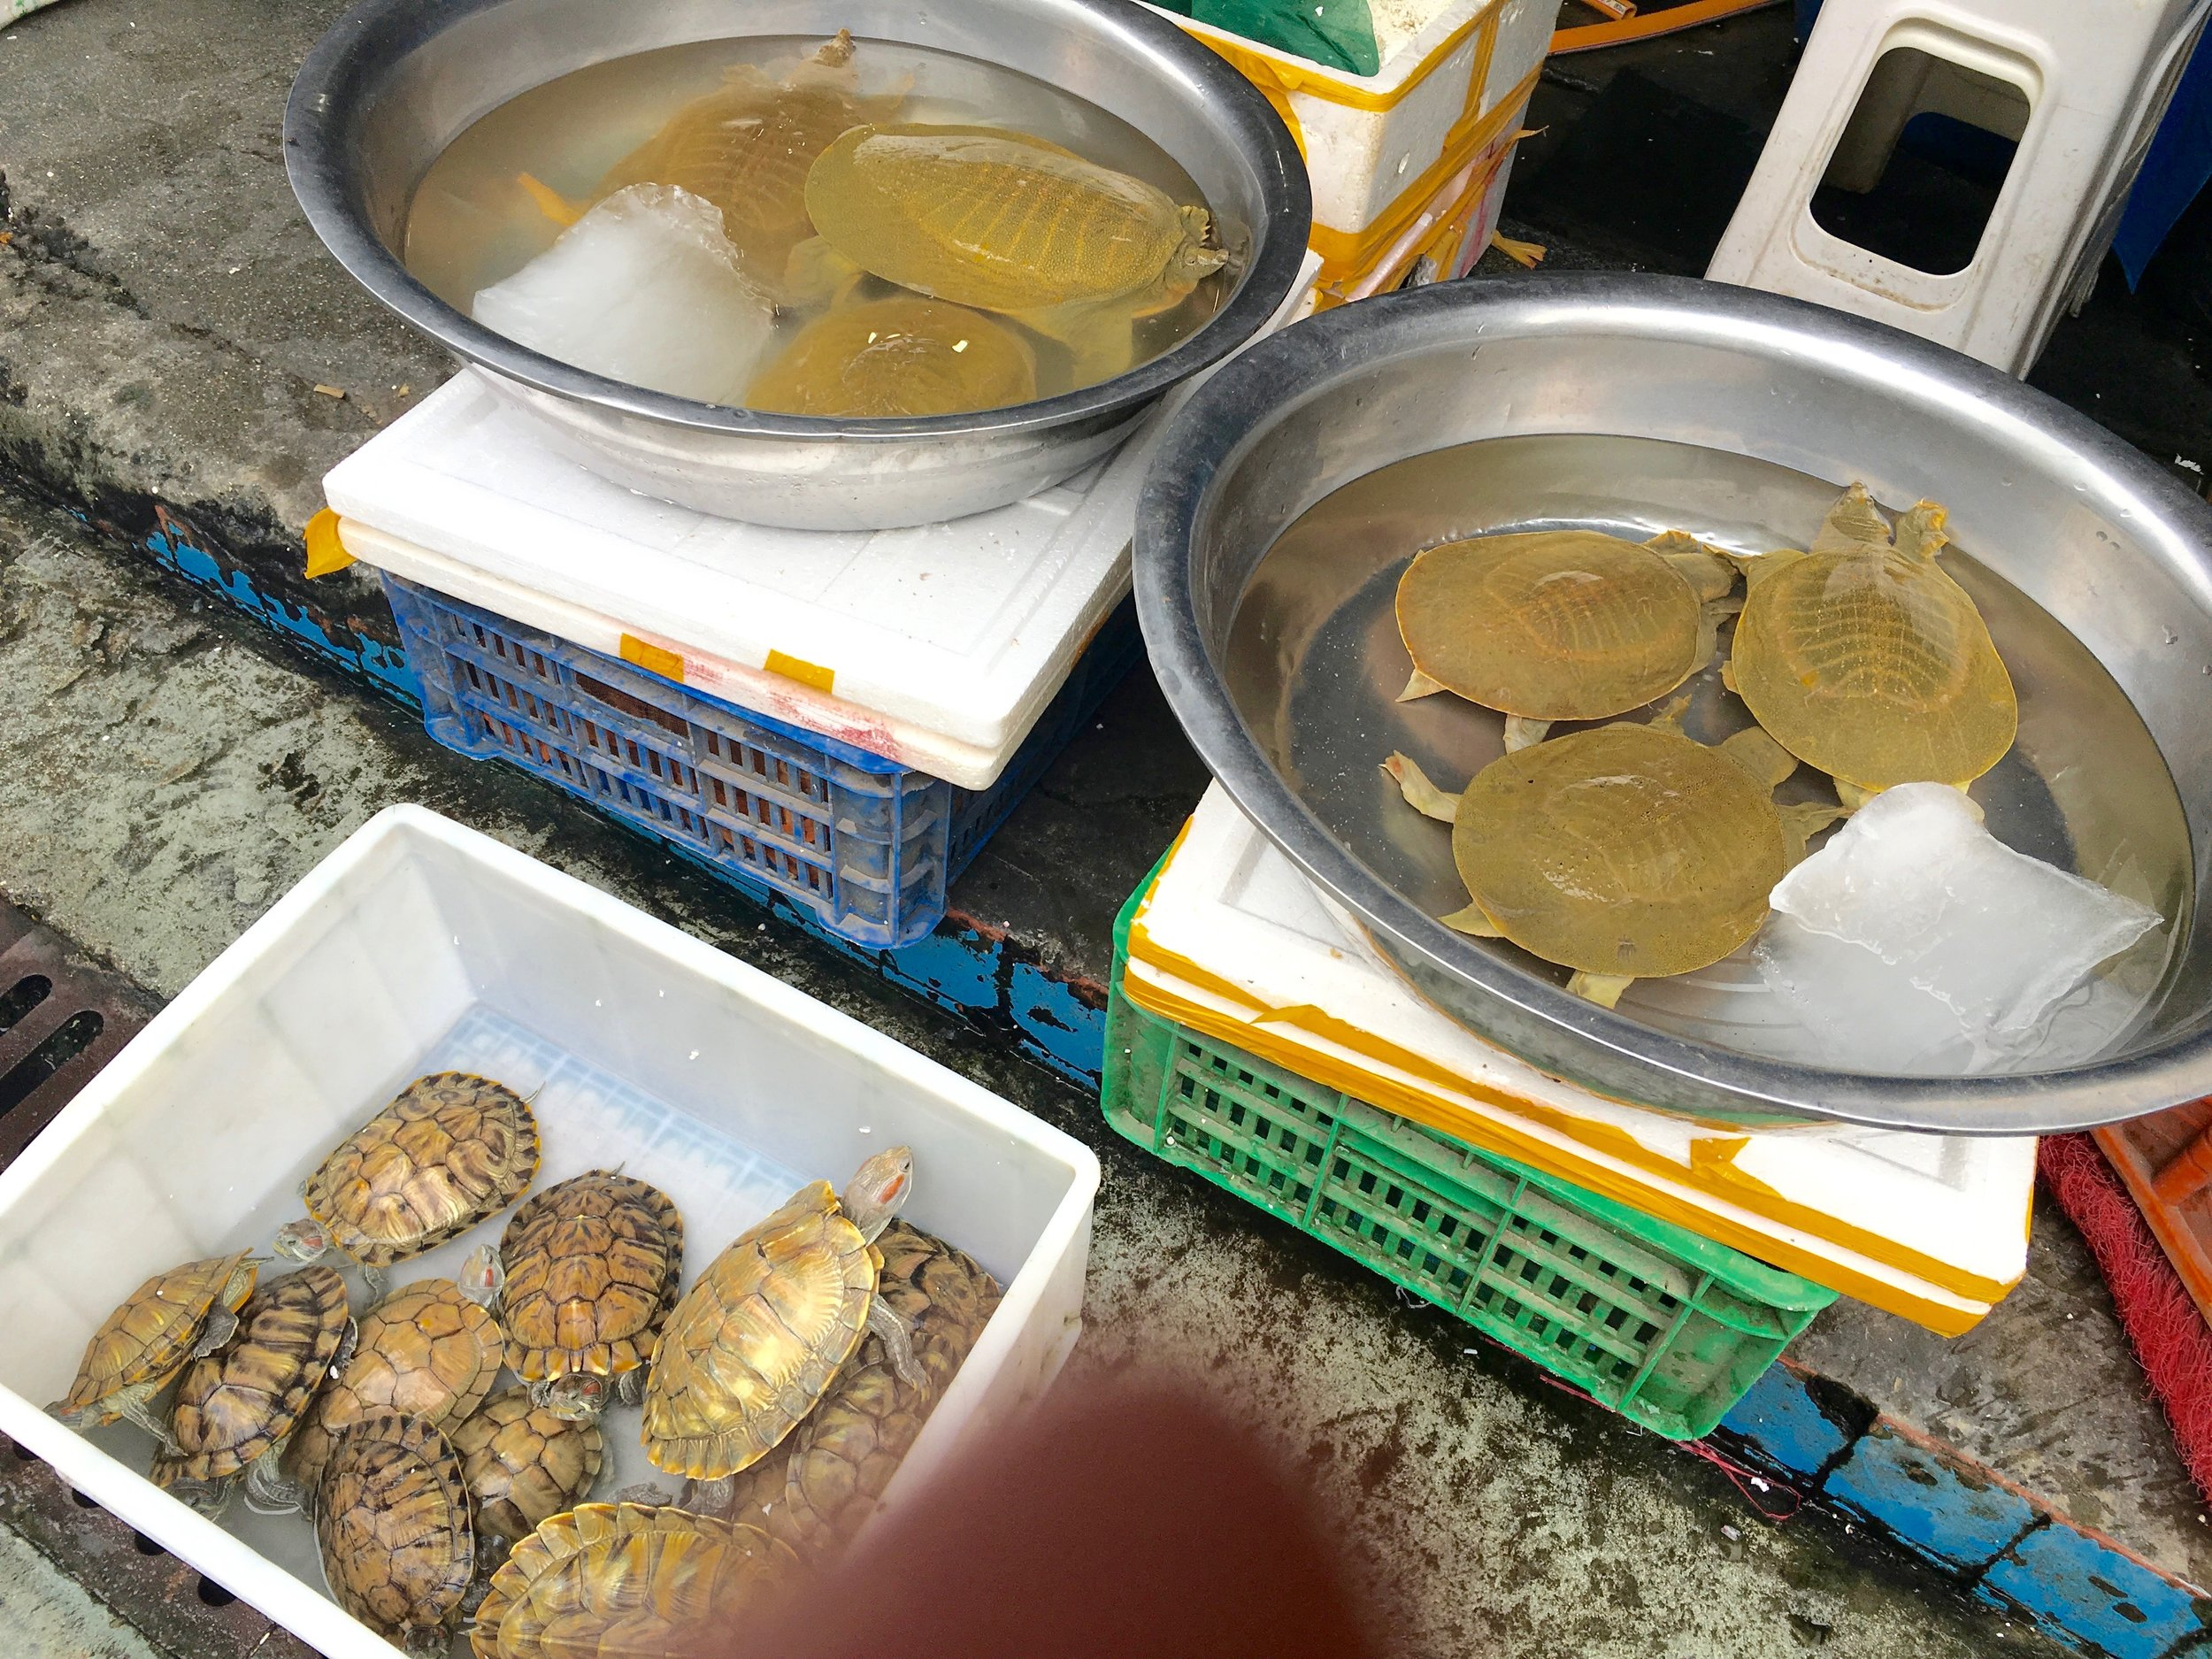 We haven't talked about seafood yet. One vendor displayed two types of turtles.